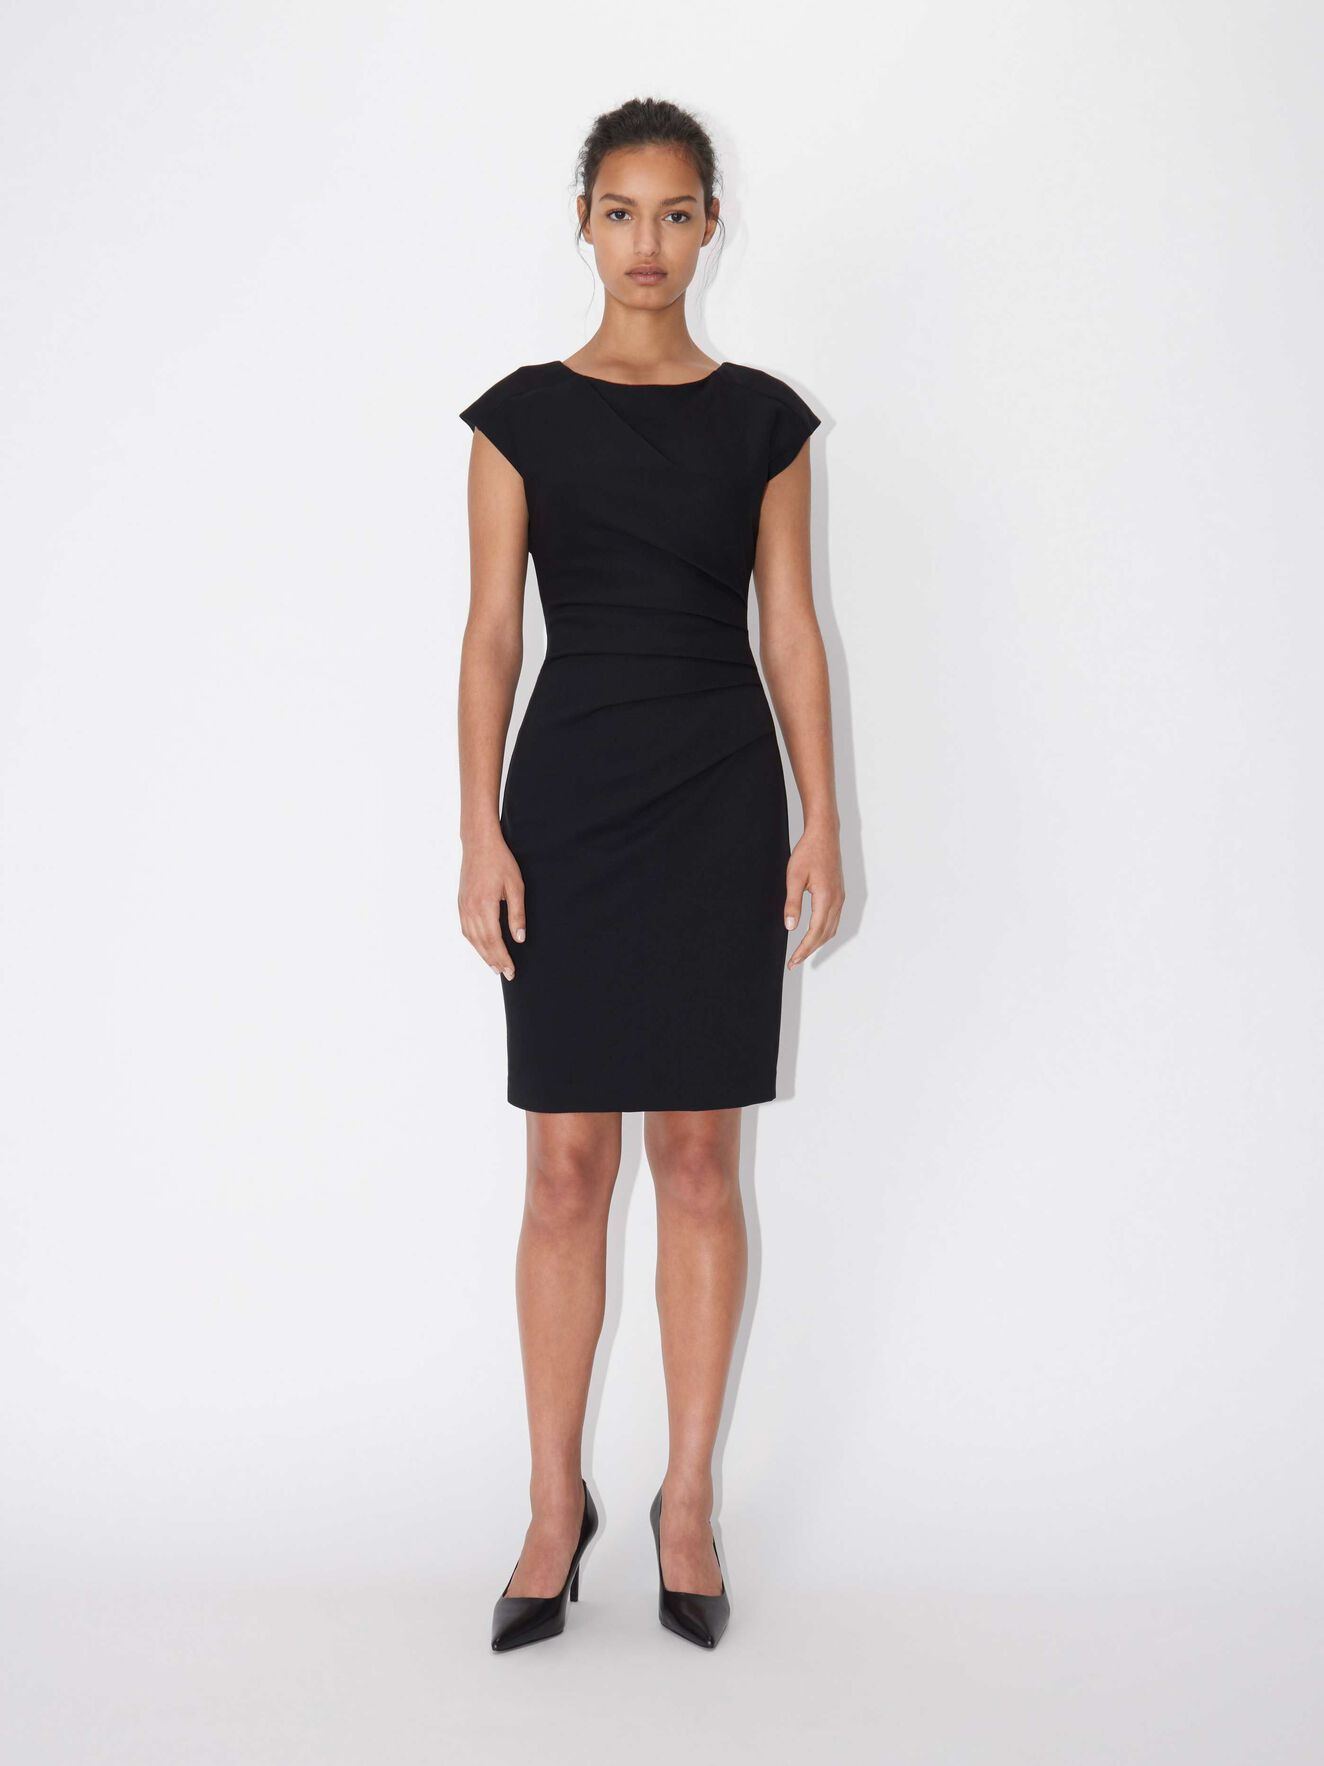 Mi stretch dress  in Black from Tiger of Sweden